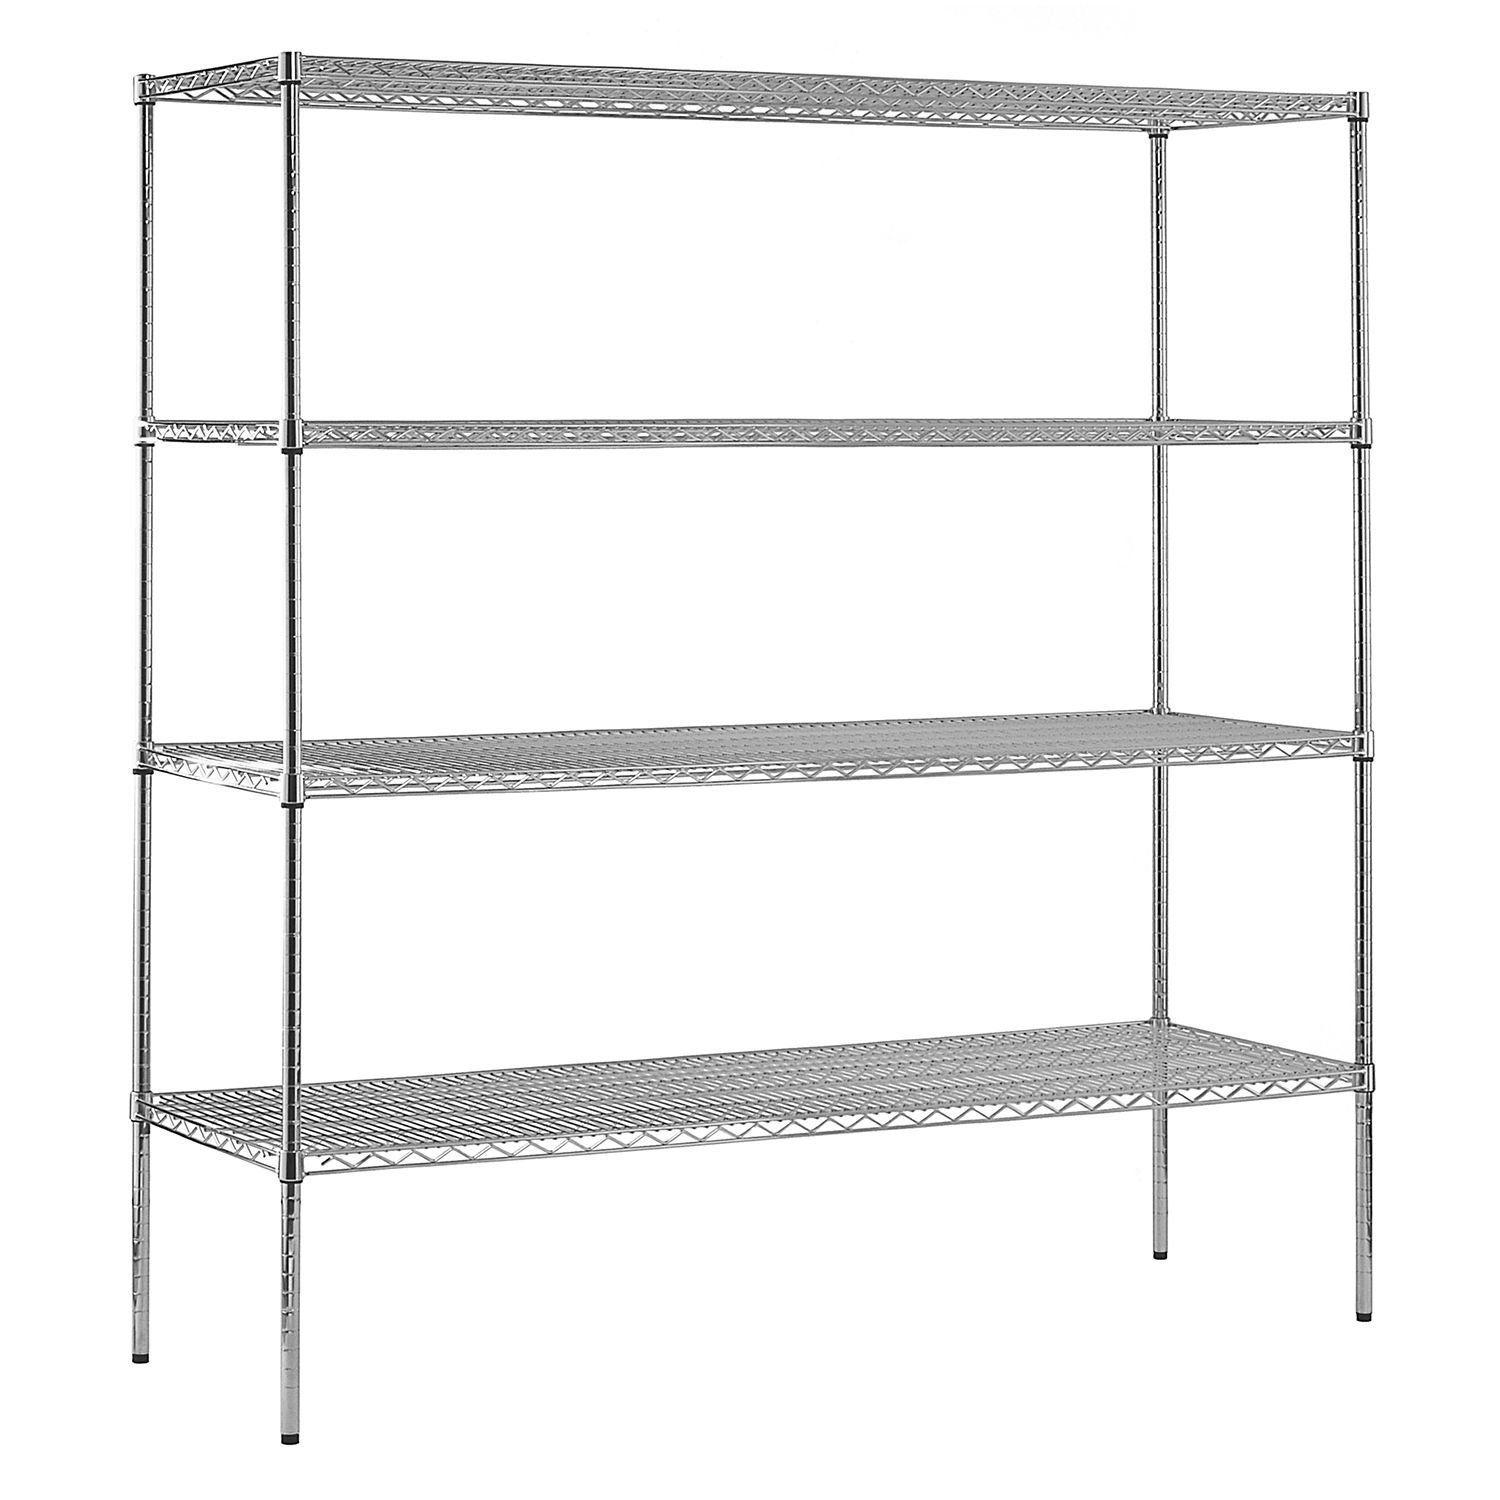 Commercial Industrial Garage Heavy Duty NSF Certified 4-Shelf Wire Shelving